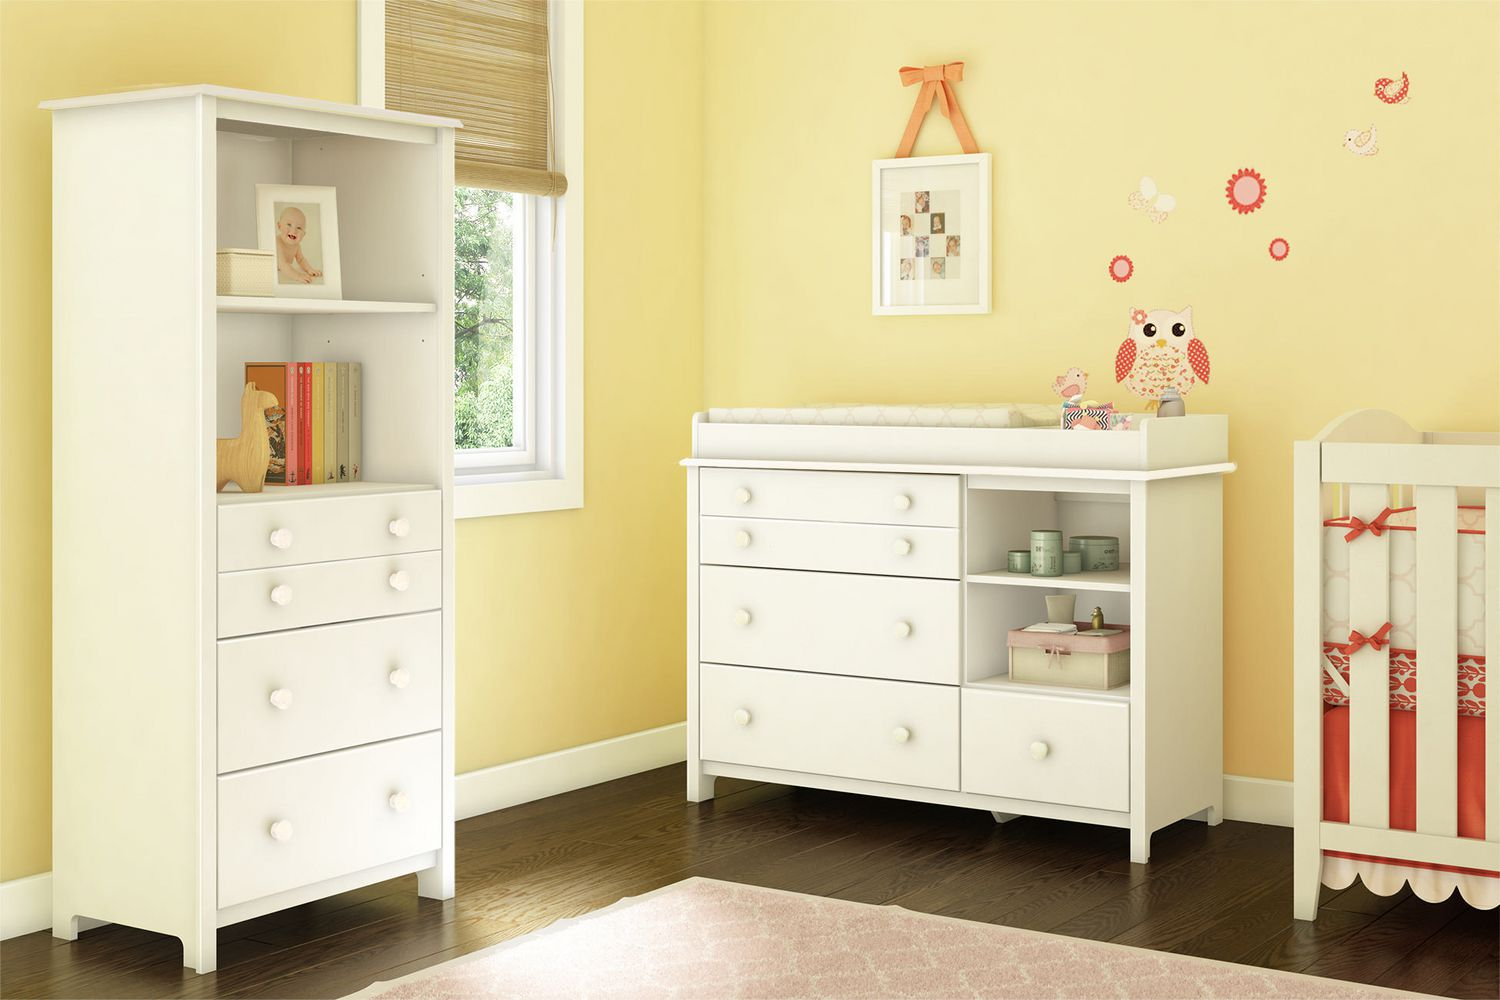 Tremendous South Shore Little Smileys Changing Table And Shelving Unit With Drawers Download Free Architecture Designs Embacsunscenecom